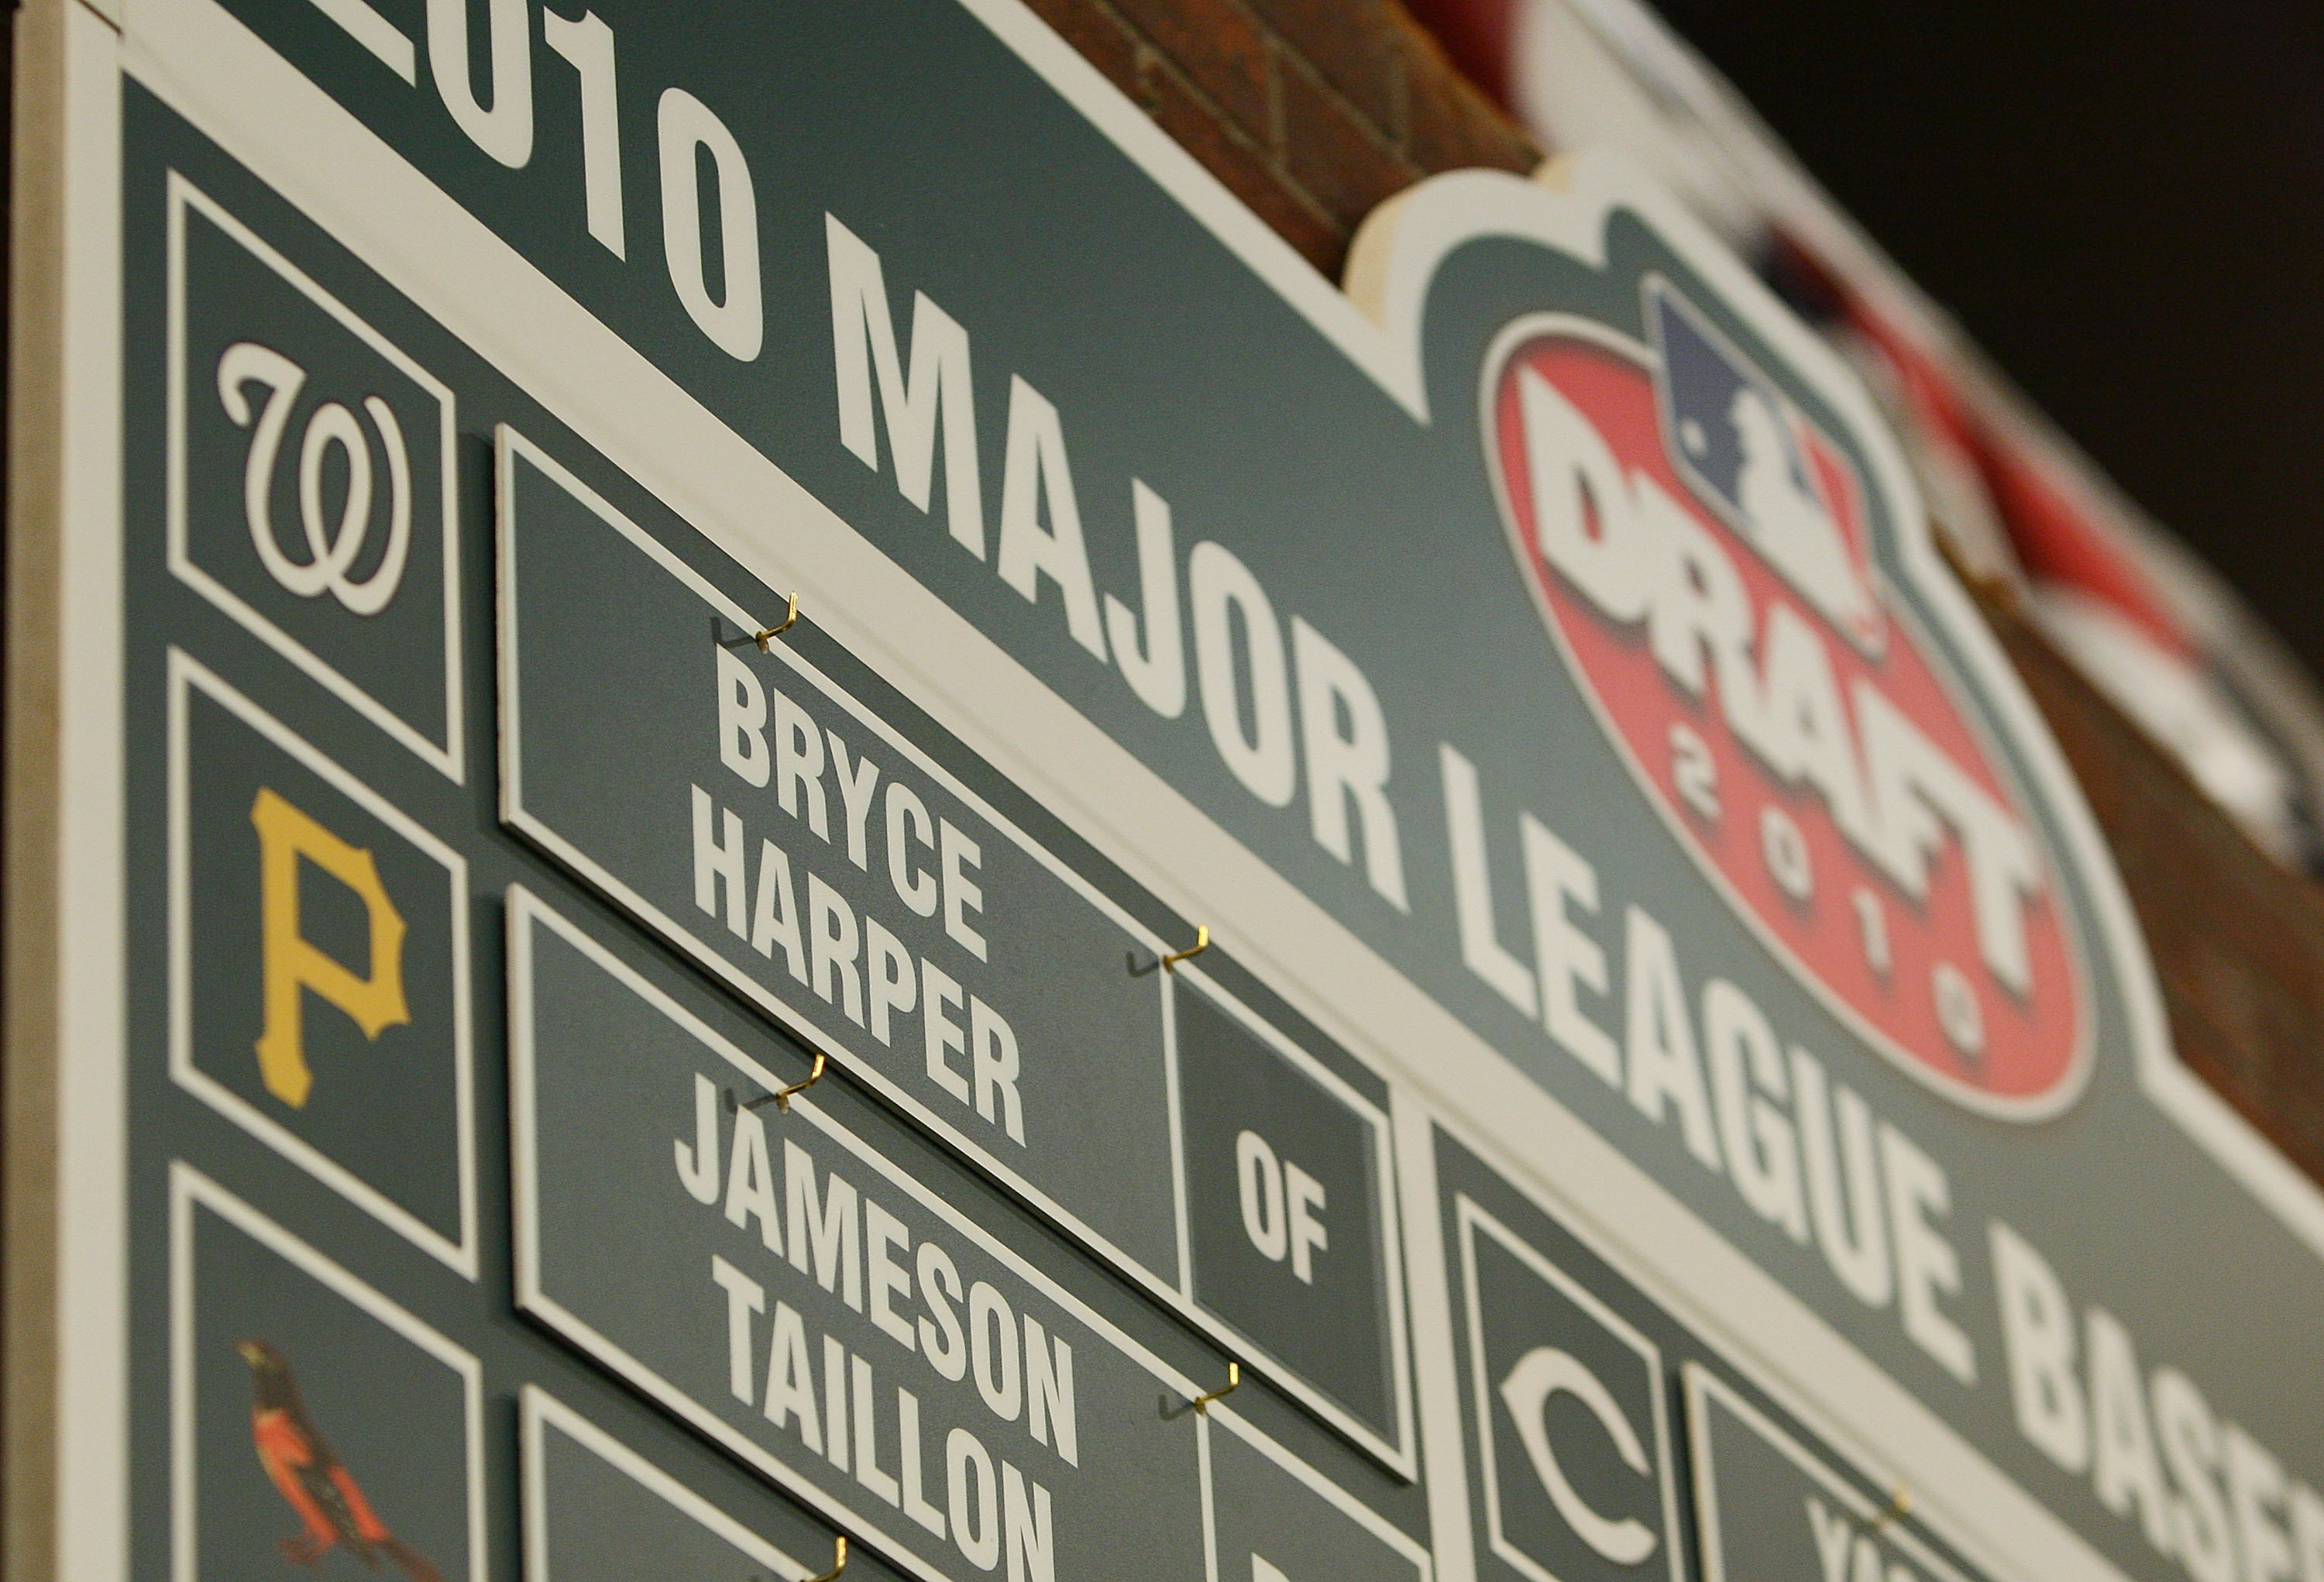 SECAUCUS, NJ - JUNE 07:  A detailed view of the first overall pick of the Washington Nationals Bryce Harper on the draft board during the MLB First Year Player Draft on June 7, 2010 held in Studio 42 at the MLB Network in Secaucus, New Jersey.  (Photo by